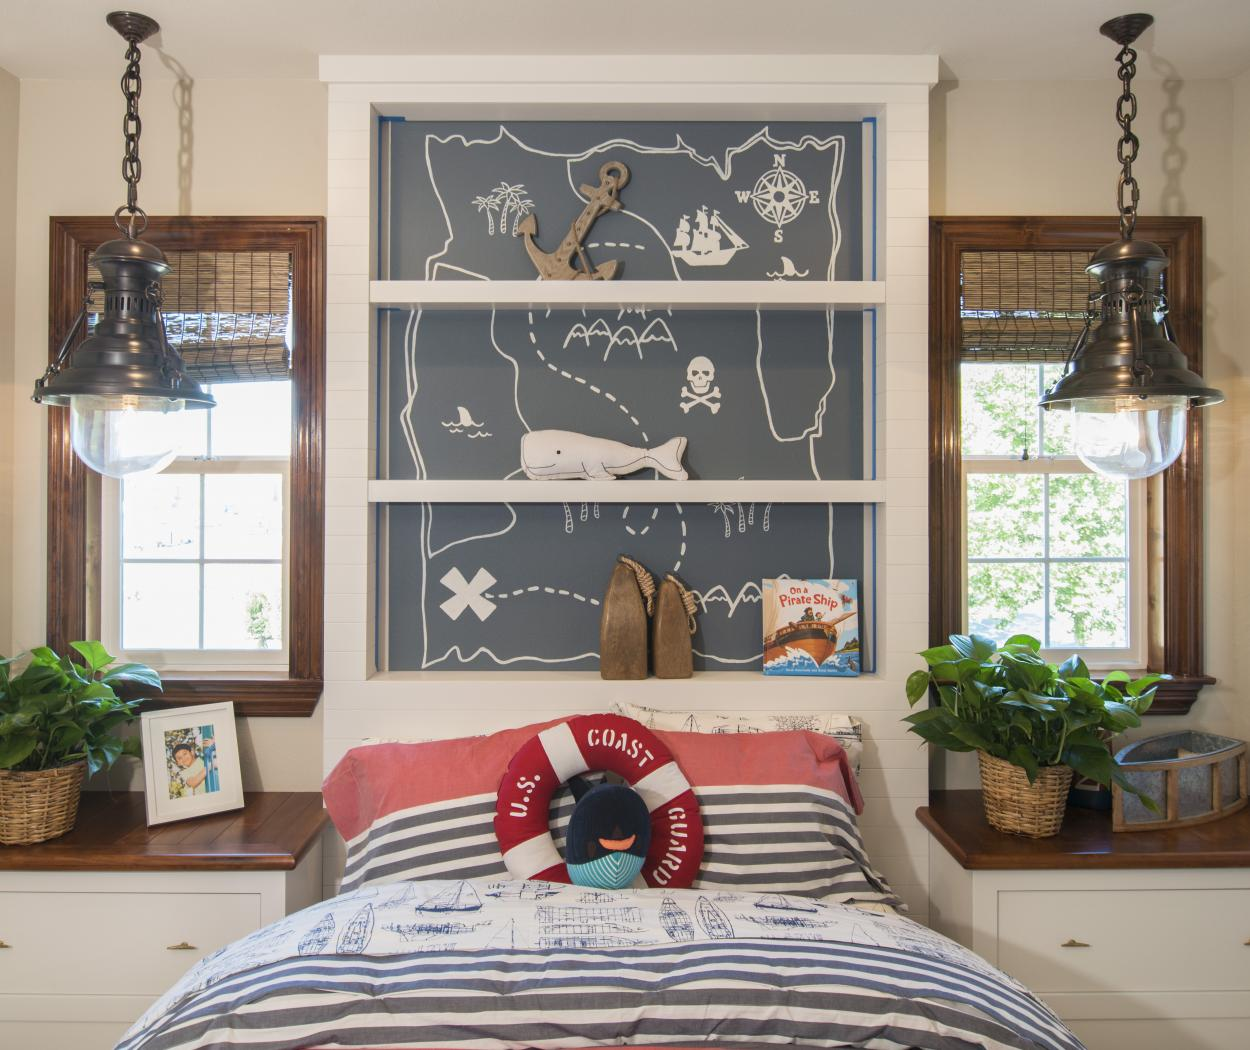 Little Boys' Sailor Bedroom with White Built-Ins, Open Shelves and Beautiful Backboard Decorations